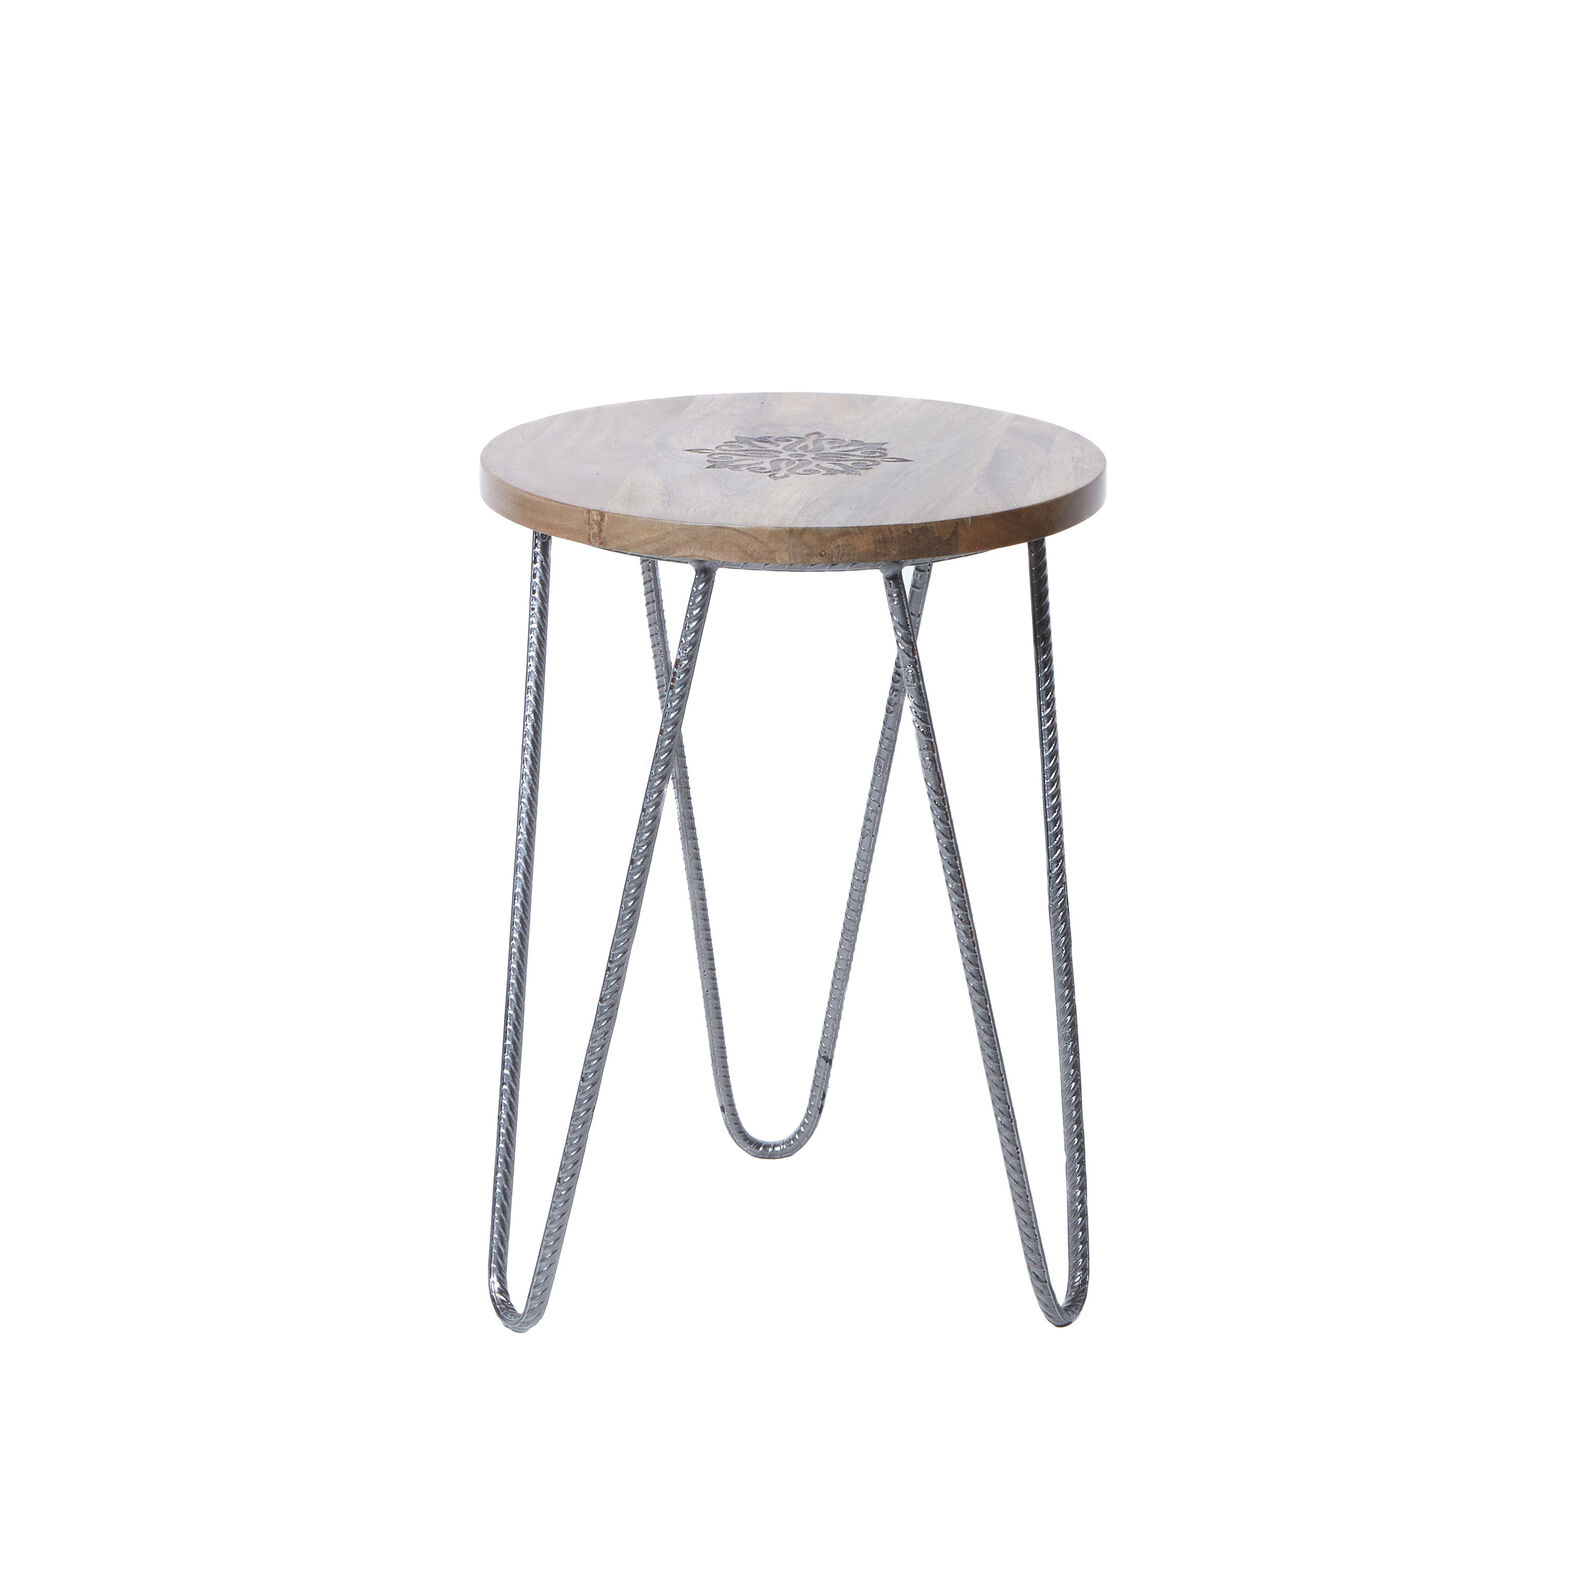 Negombo coffee table in wood and metal